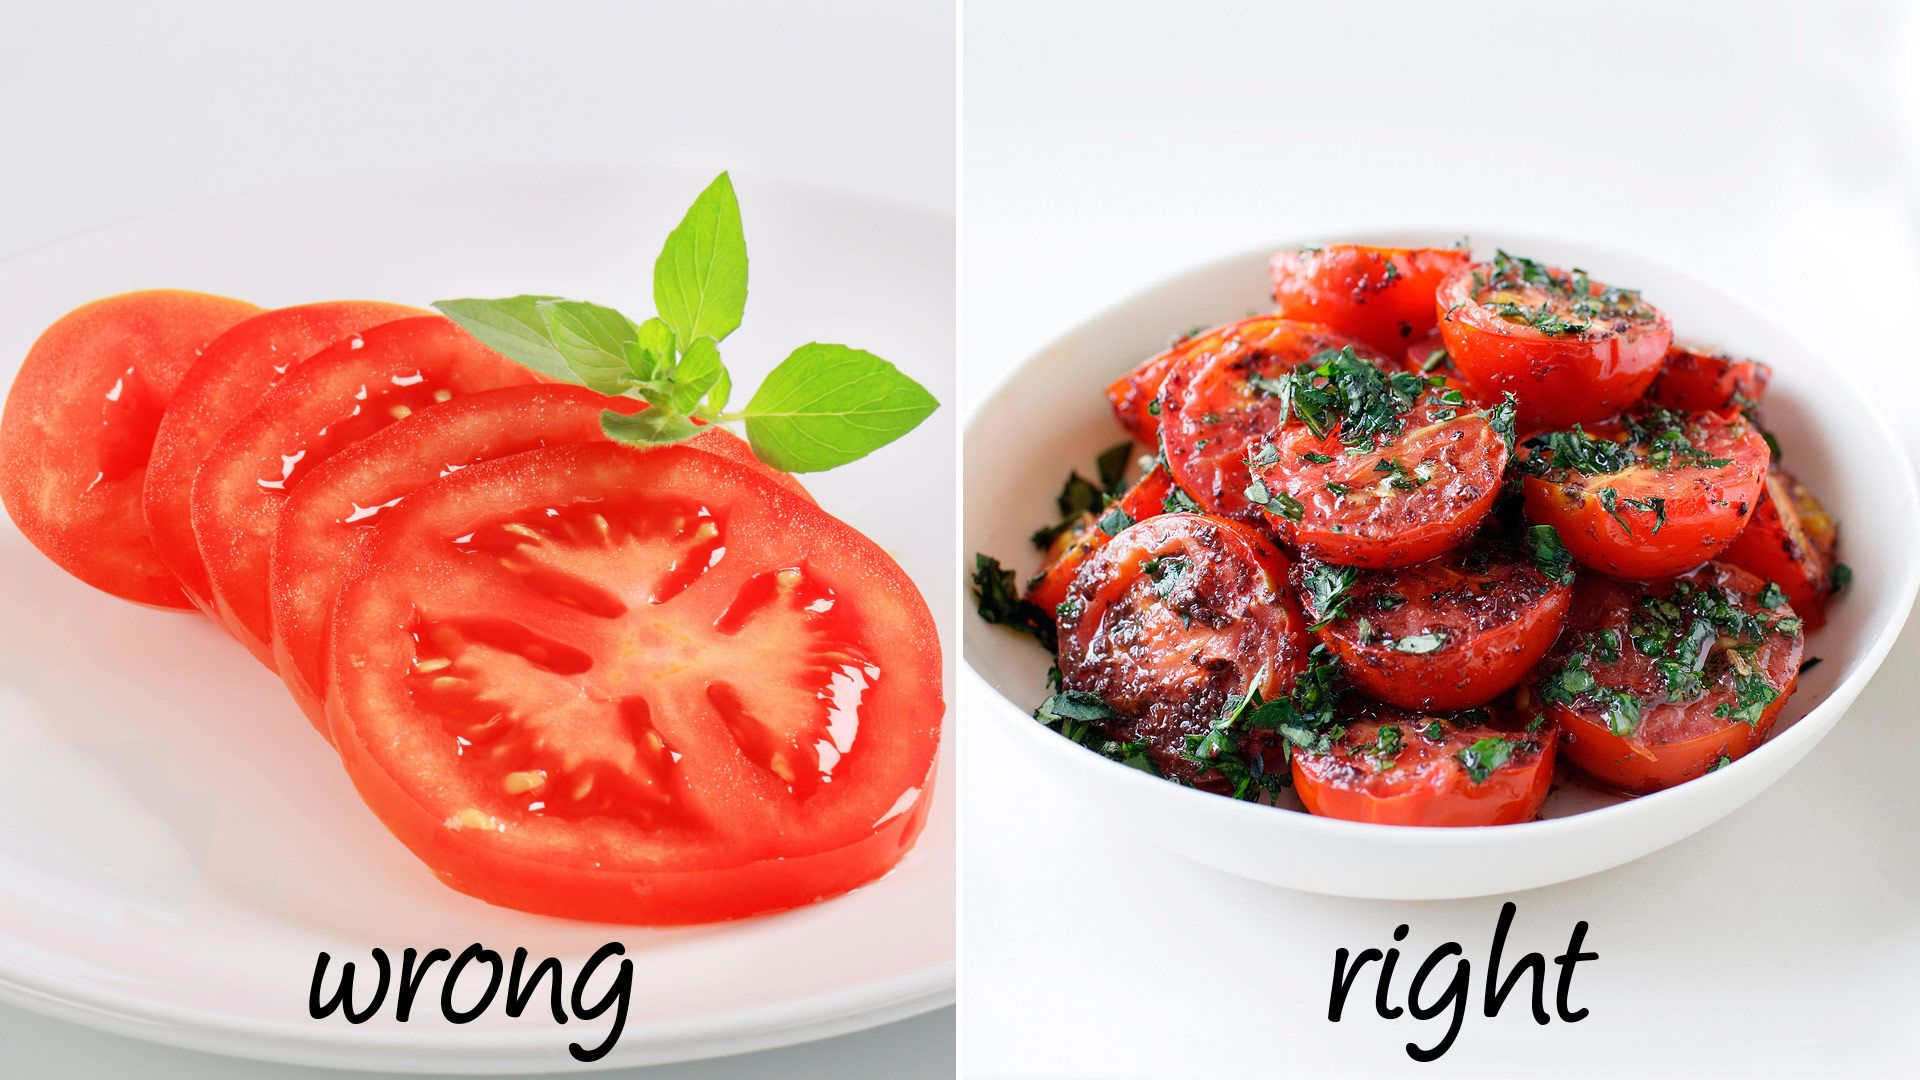 """<p><strong>Wrong</strong>: Though tomatoes are delicious with a sprinkle of salt and some balsamic, eating them raw is actually not your best bet.</p> <p><strong>Right:</strong> Cook them. Adding heat and oil to tomatoes makes it easier for your body to absorb lycopene, according to research from Harvard University, published in the <a href=""""http://jnci.oxfordjournals.org/content/94/5/391.full""""><em>Journal of the National Cancer Institute</em></a>. And a 2011 study published in the <a href=""""http://ajl.sagepub.com/content/5/2/182""""><em>American Journal of Lifestyle Medicine</em></a> found that lycopene helps reduce the risk of stroke, certain cancers, and heart disease. </p>"""